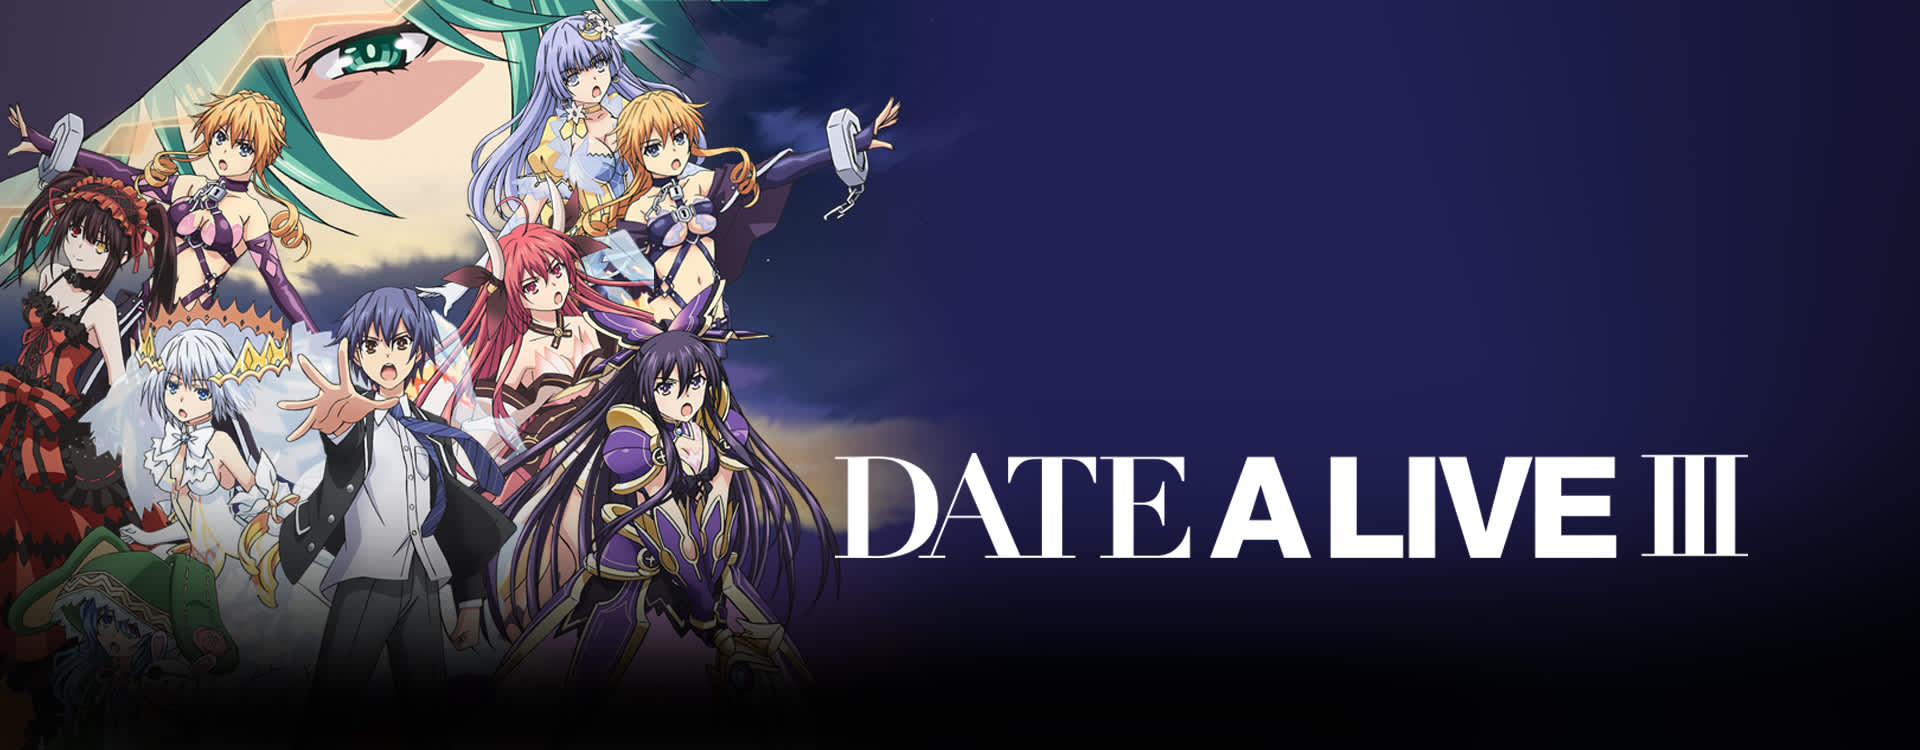 Watch Date A Live Episodes Sub Dub Comedy Fan Service